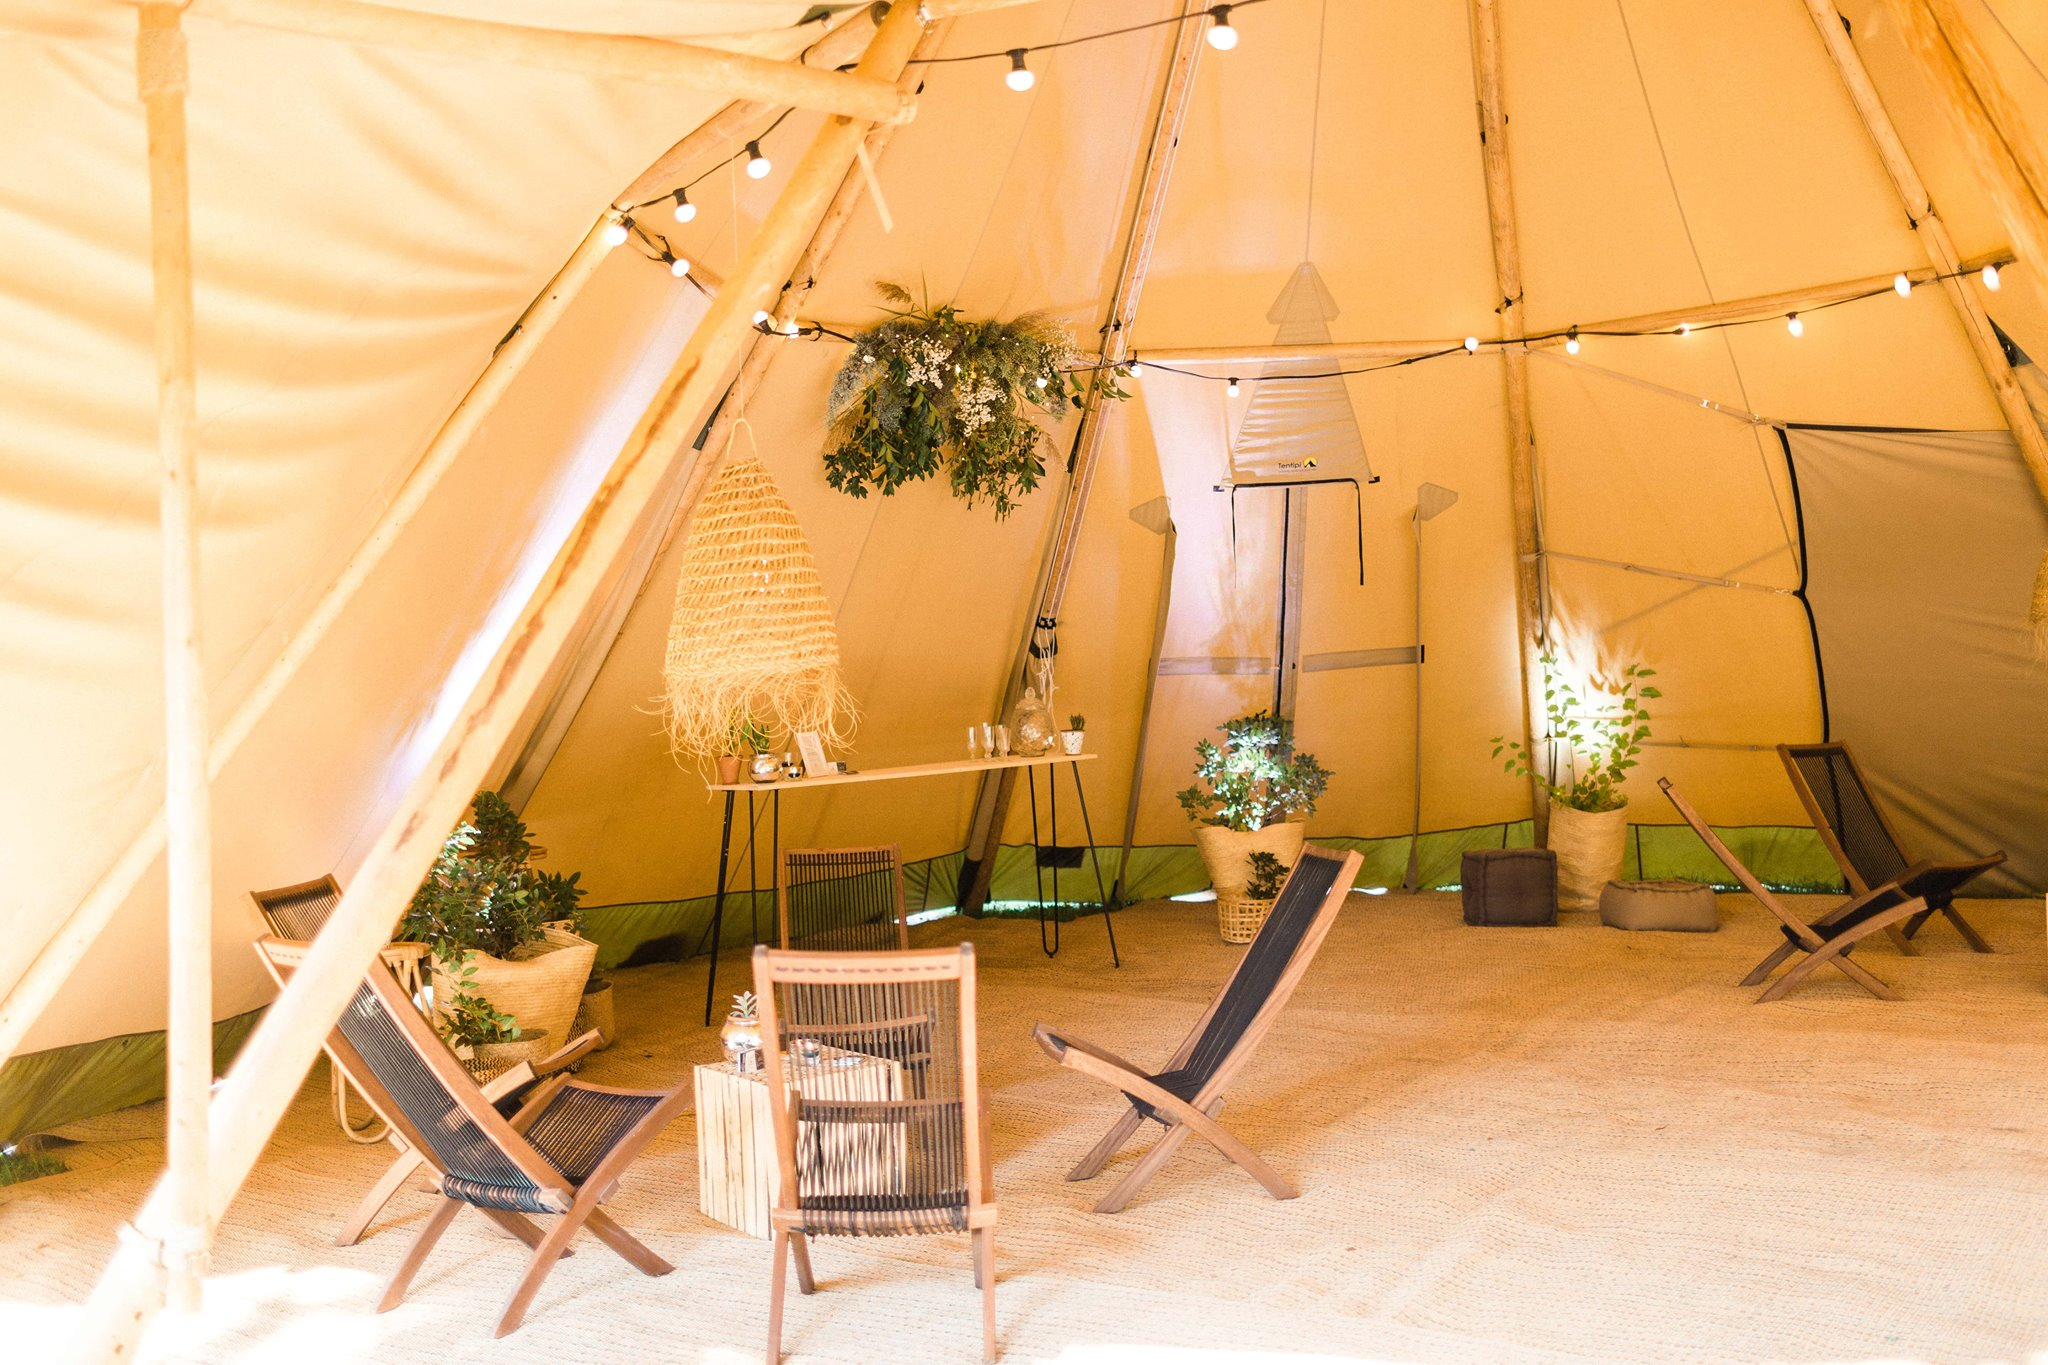 DÉCORATION LOUNGE WEDDING TIPI / SALONS / SUSPENSIONS / BAR…